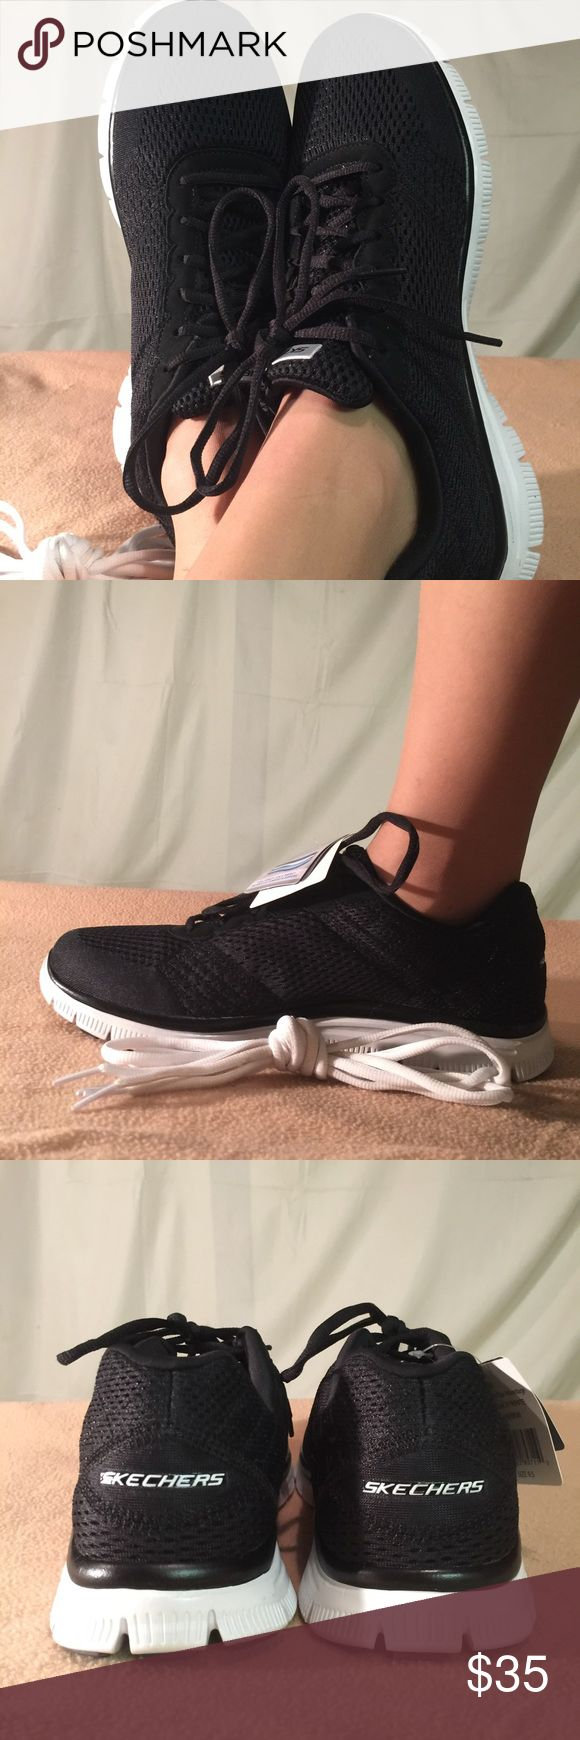 New Skechers Ladies Black Memory Foam Sneakers These shoes are Brand New/Never Worn and are in PERFECT CONDITION. Skechers Shoes Sneakers